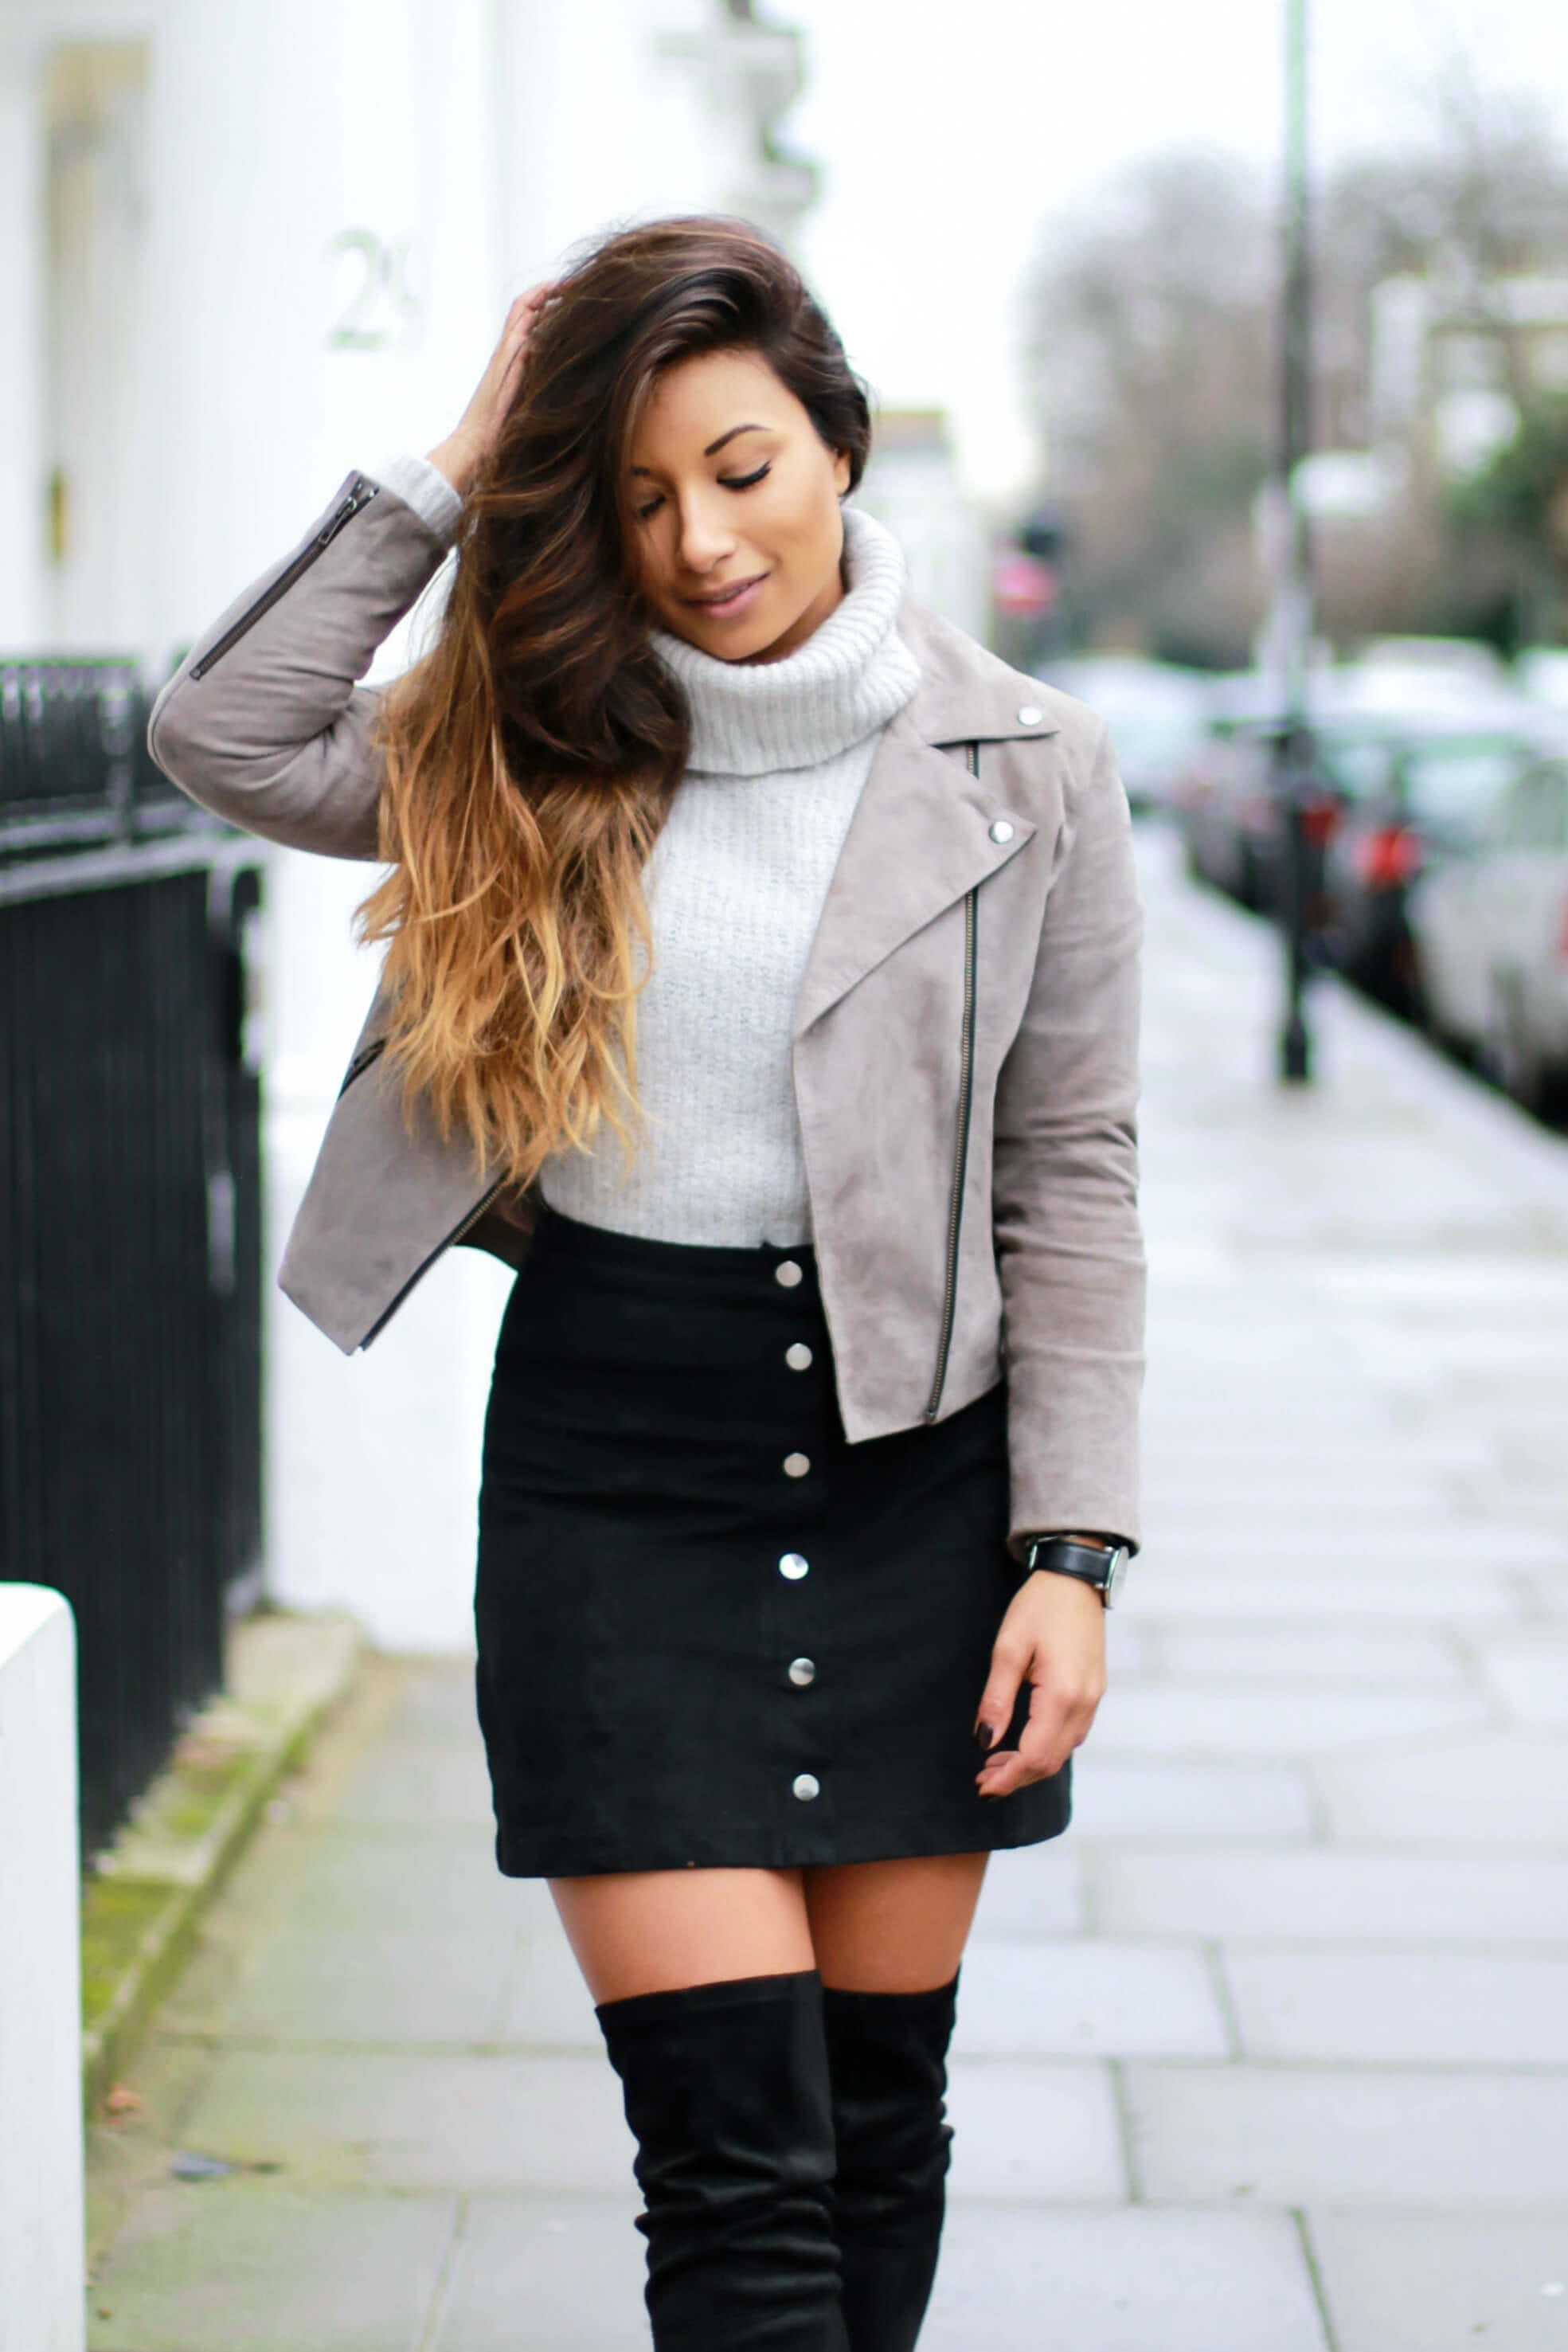 Ways To Transition Over The Knee Boots Into Spring